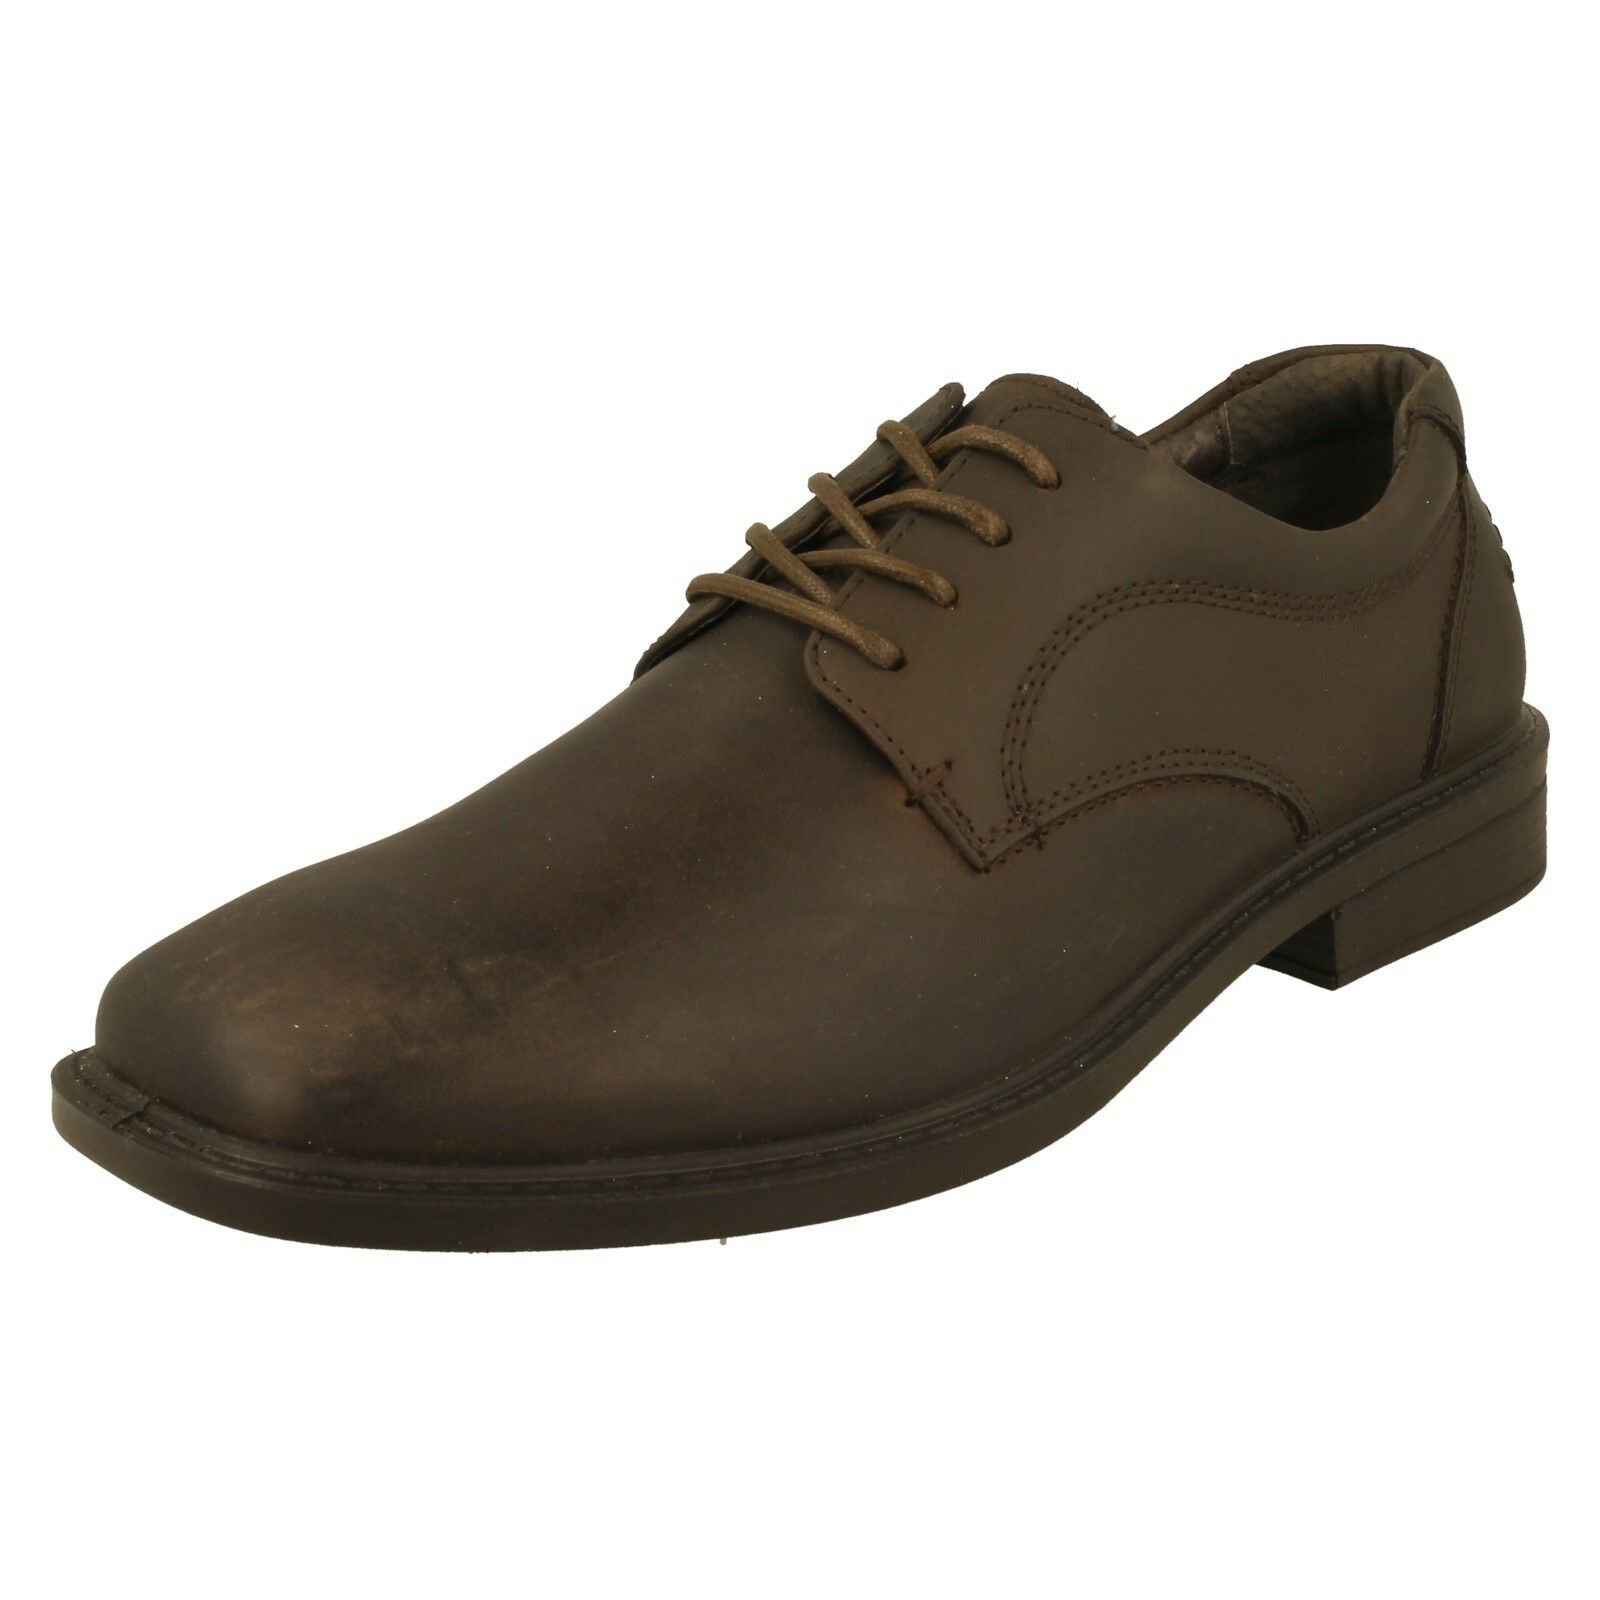 Uomo Hush puppies Scarpe Casual - NORWICH HP